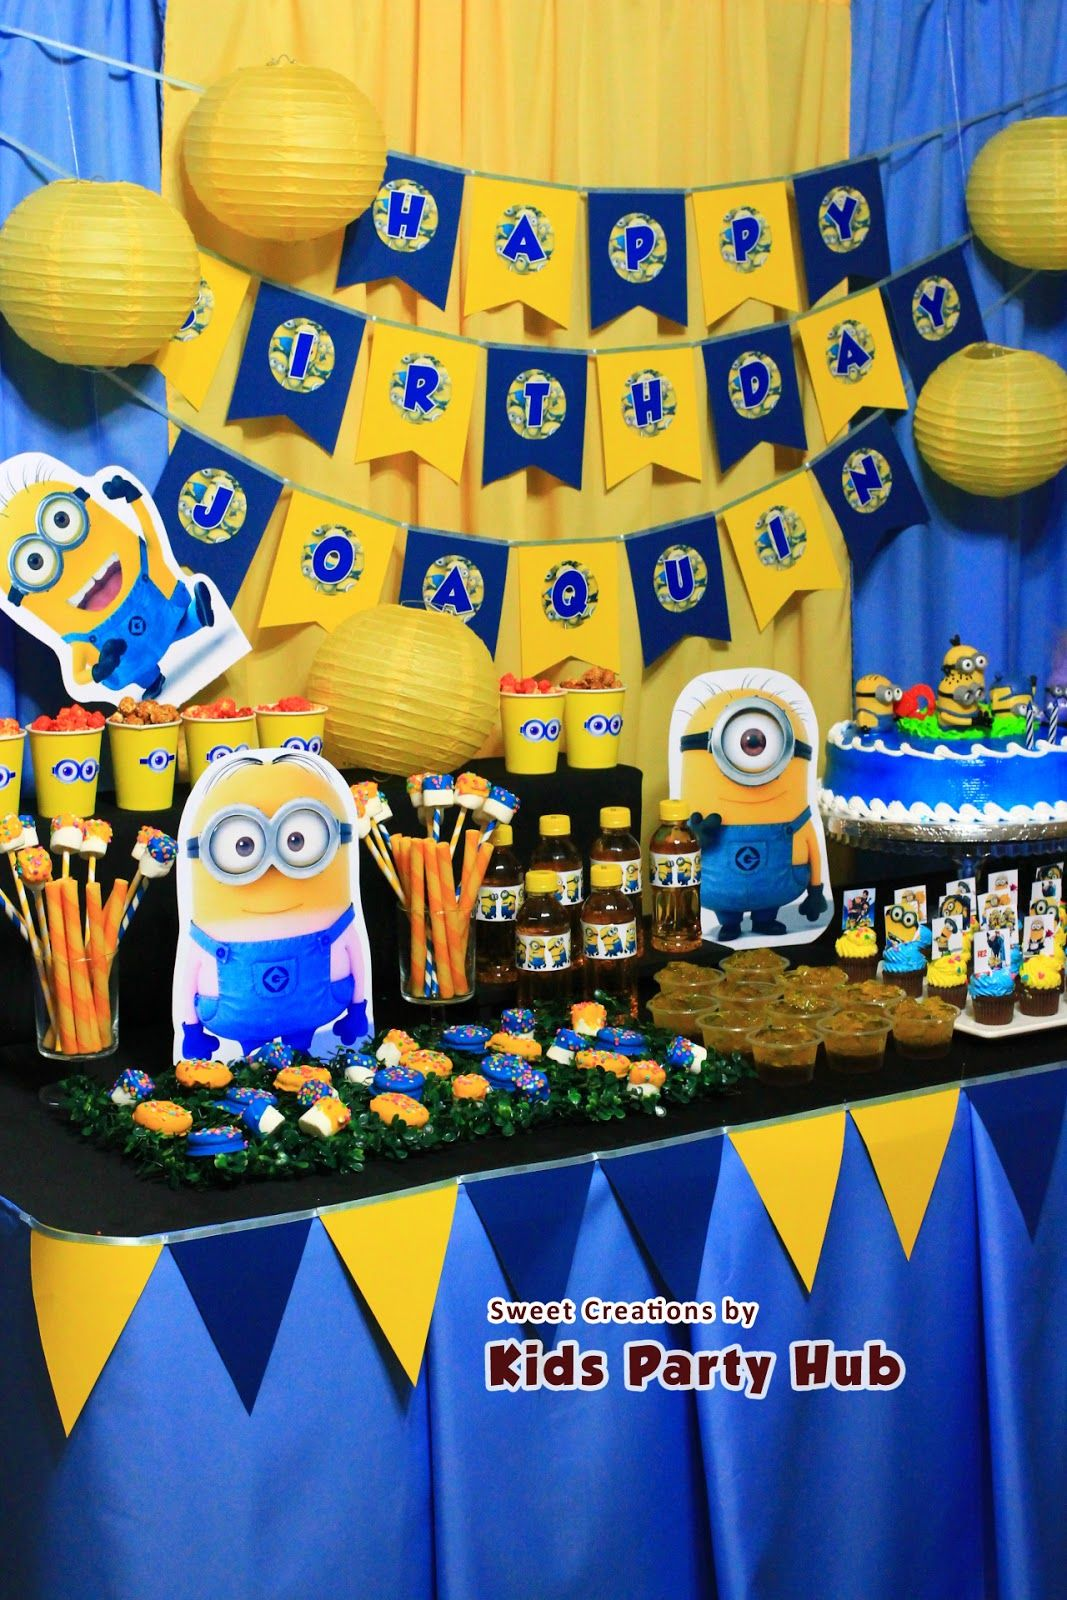 This has been my favorite theme so far i enjoyed a lot making this despicable me minions themed party for joaquin s birthday